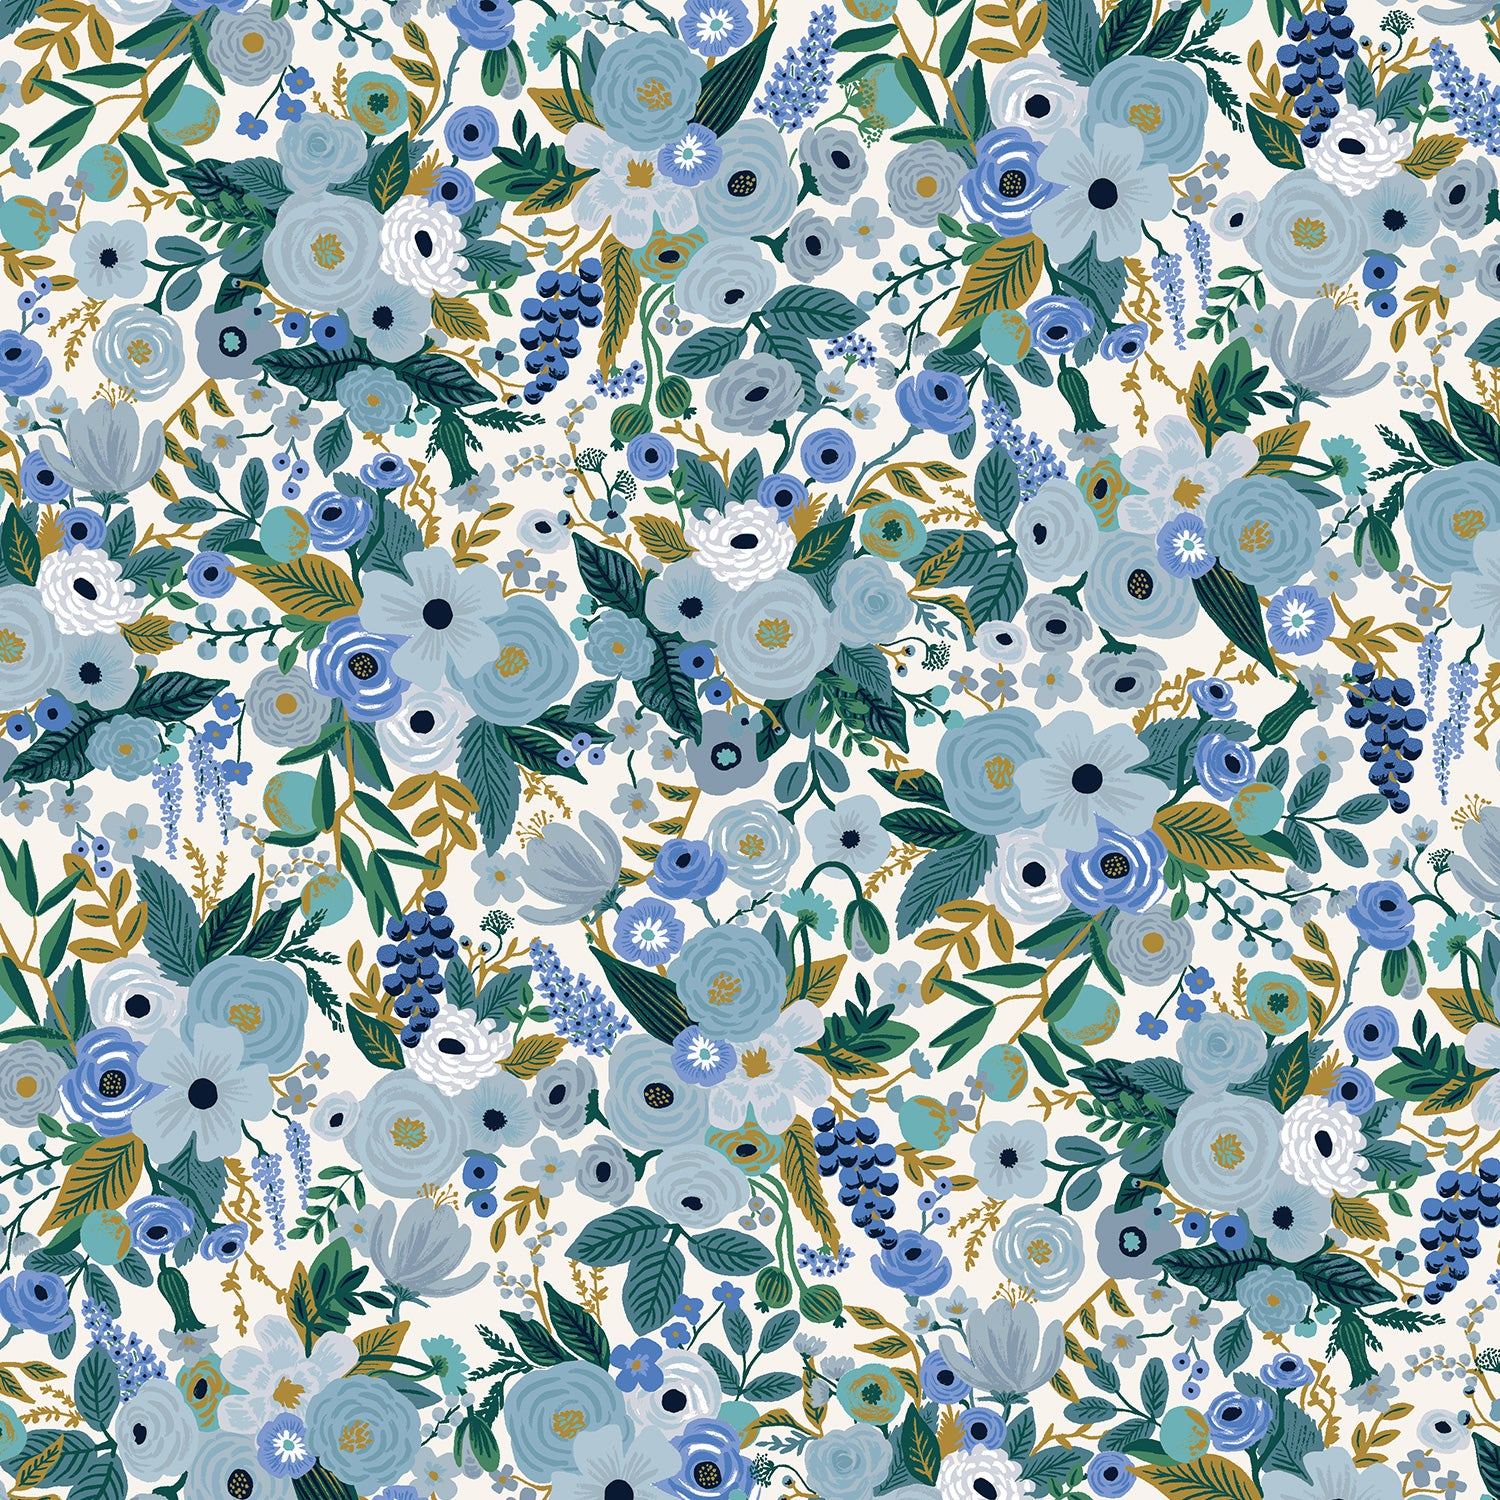 Manufacturer: Cotton and Steel Designer: Rifle Paper Co. Collection: Garden Party Print Name: Petite in Blue Material: 100% Cotton  Weight: Quilting  SKU: RP104-BL5 Width: 44 inches